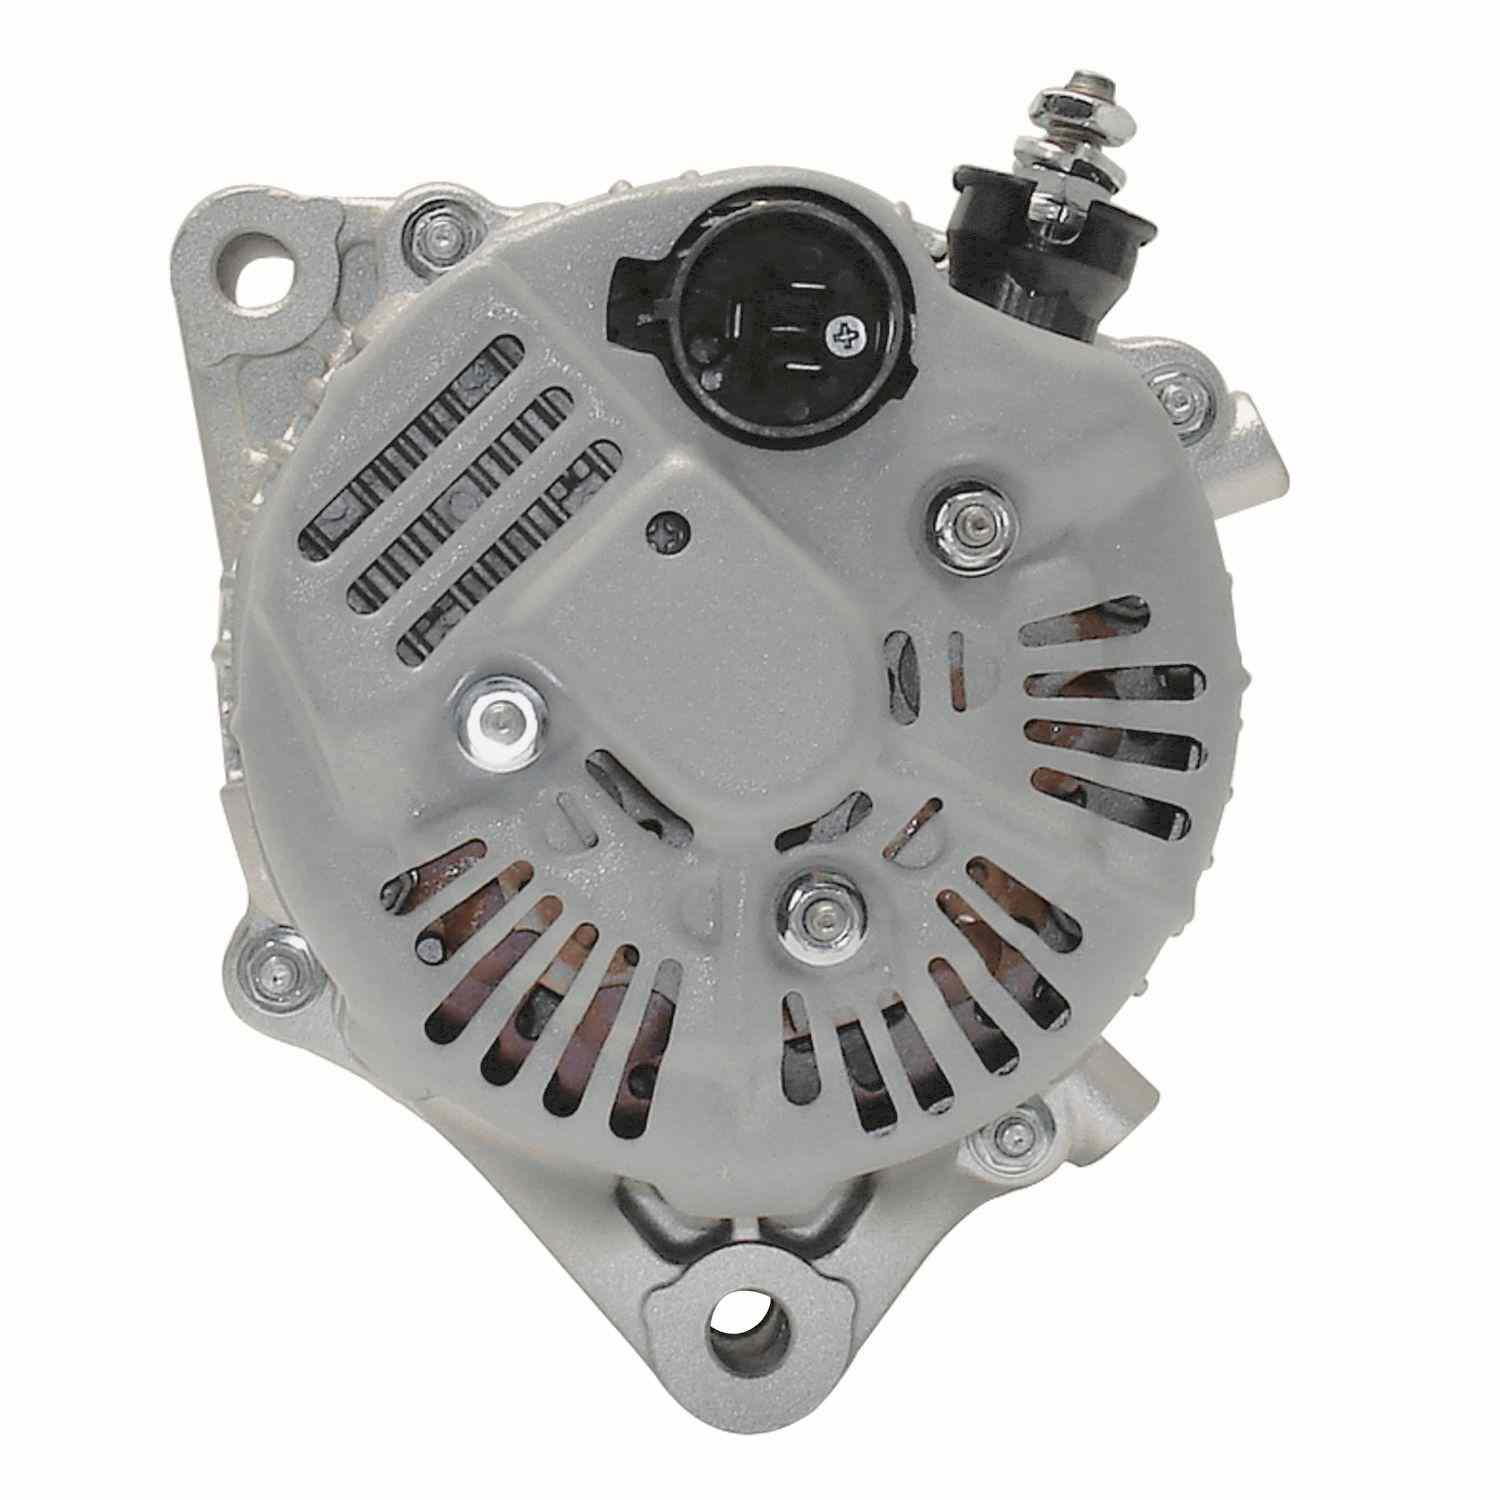 ACDELCO GOLD/PROFESSIONAL - Reman Alternator - DCC 334-1916